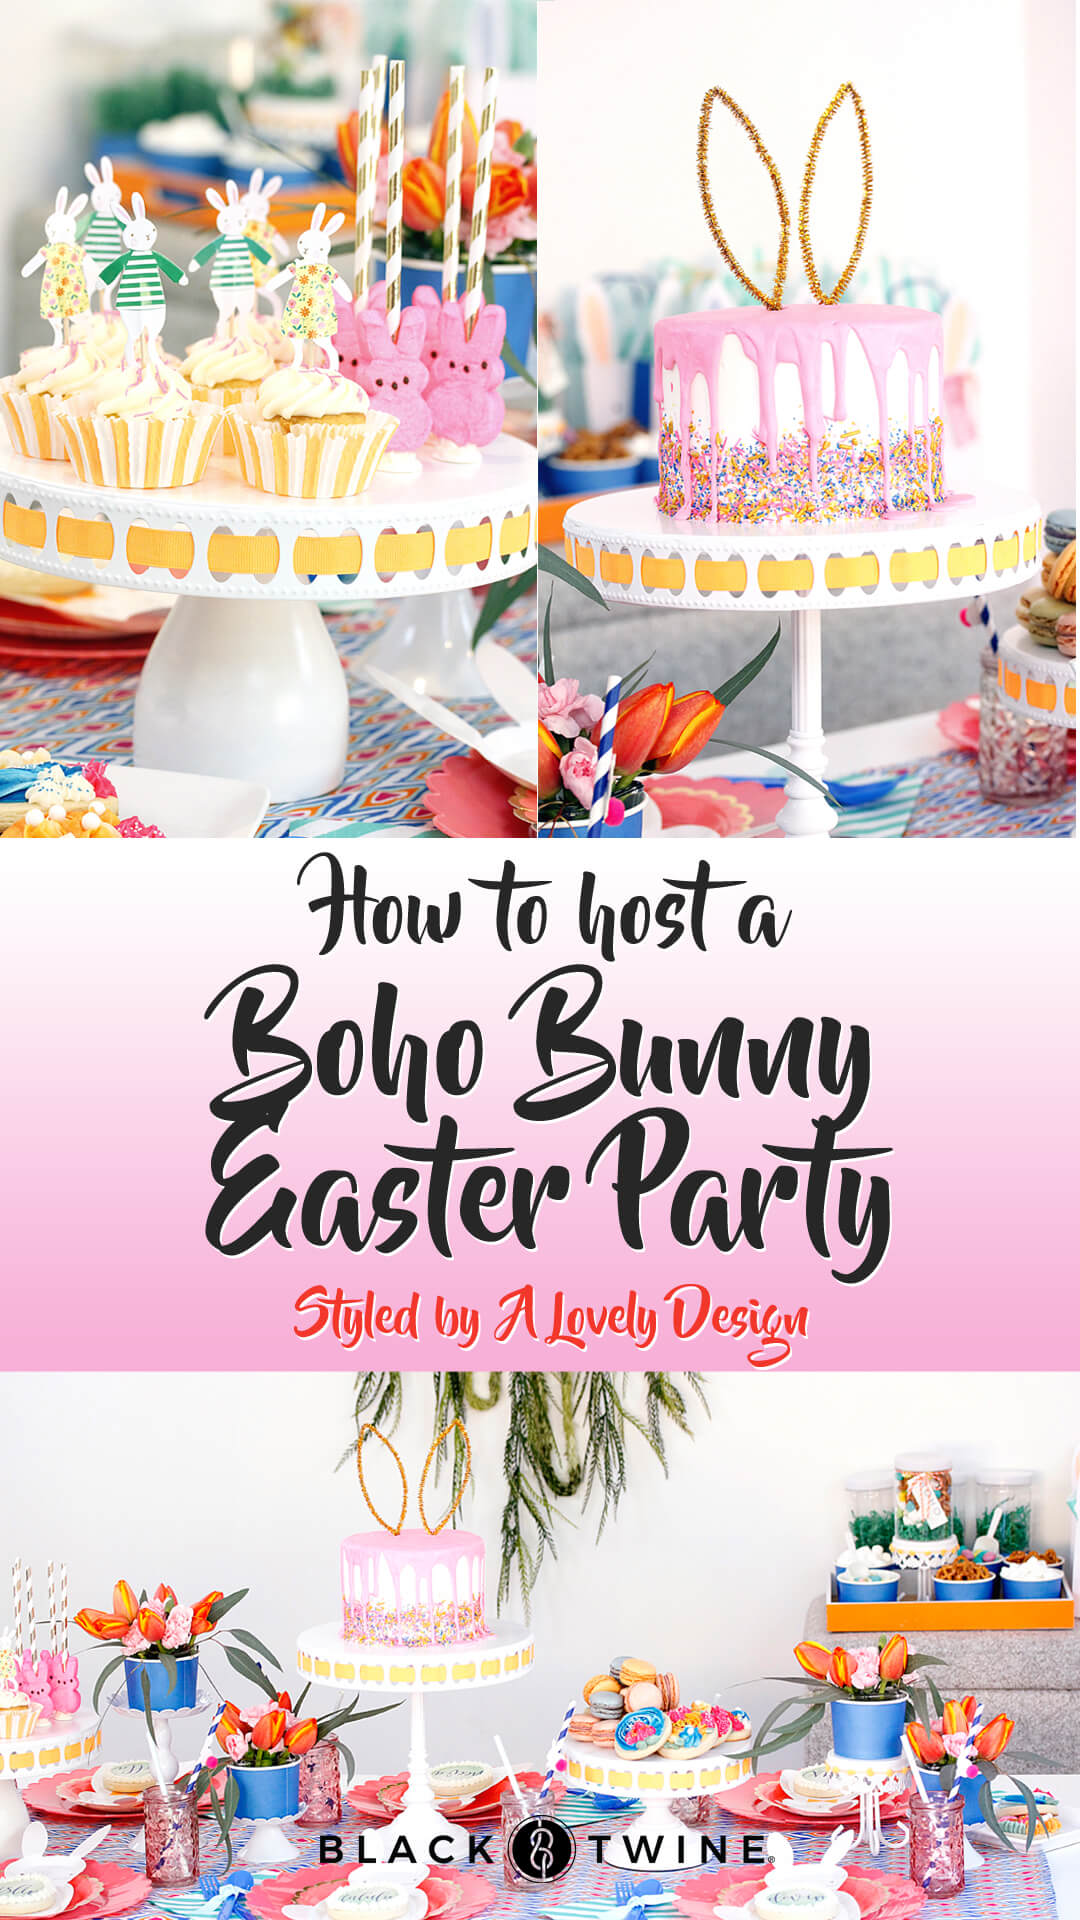 Collage Image Boho Bunny Easter Party by A Lovely Design | Black Twine